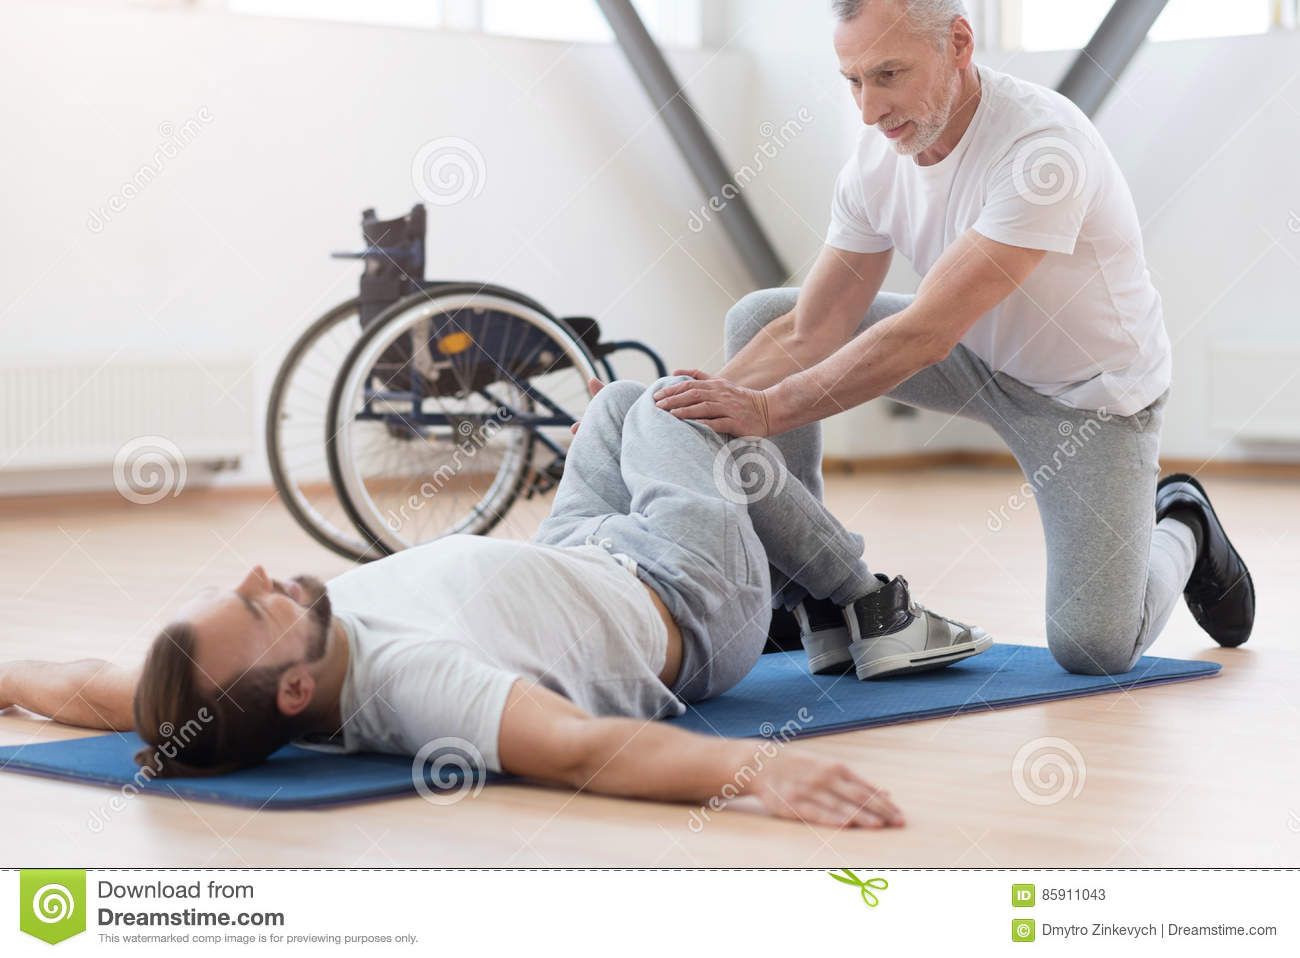 Proficient general practitioner stretching the disabled in the gym